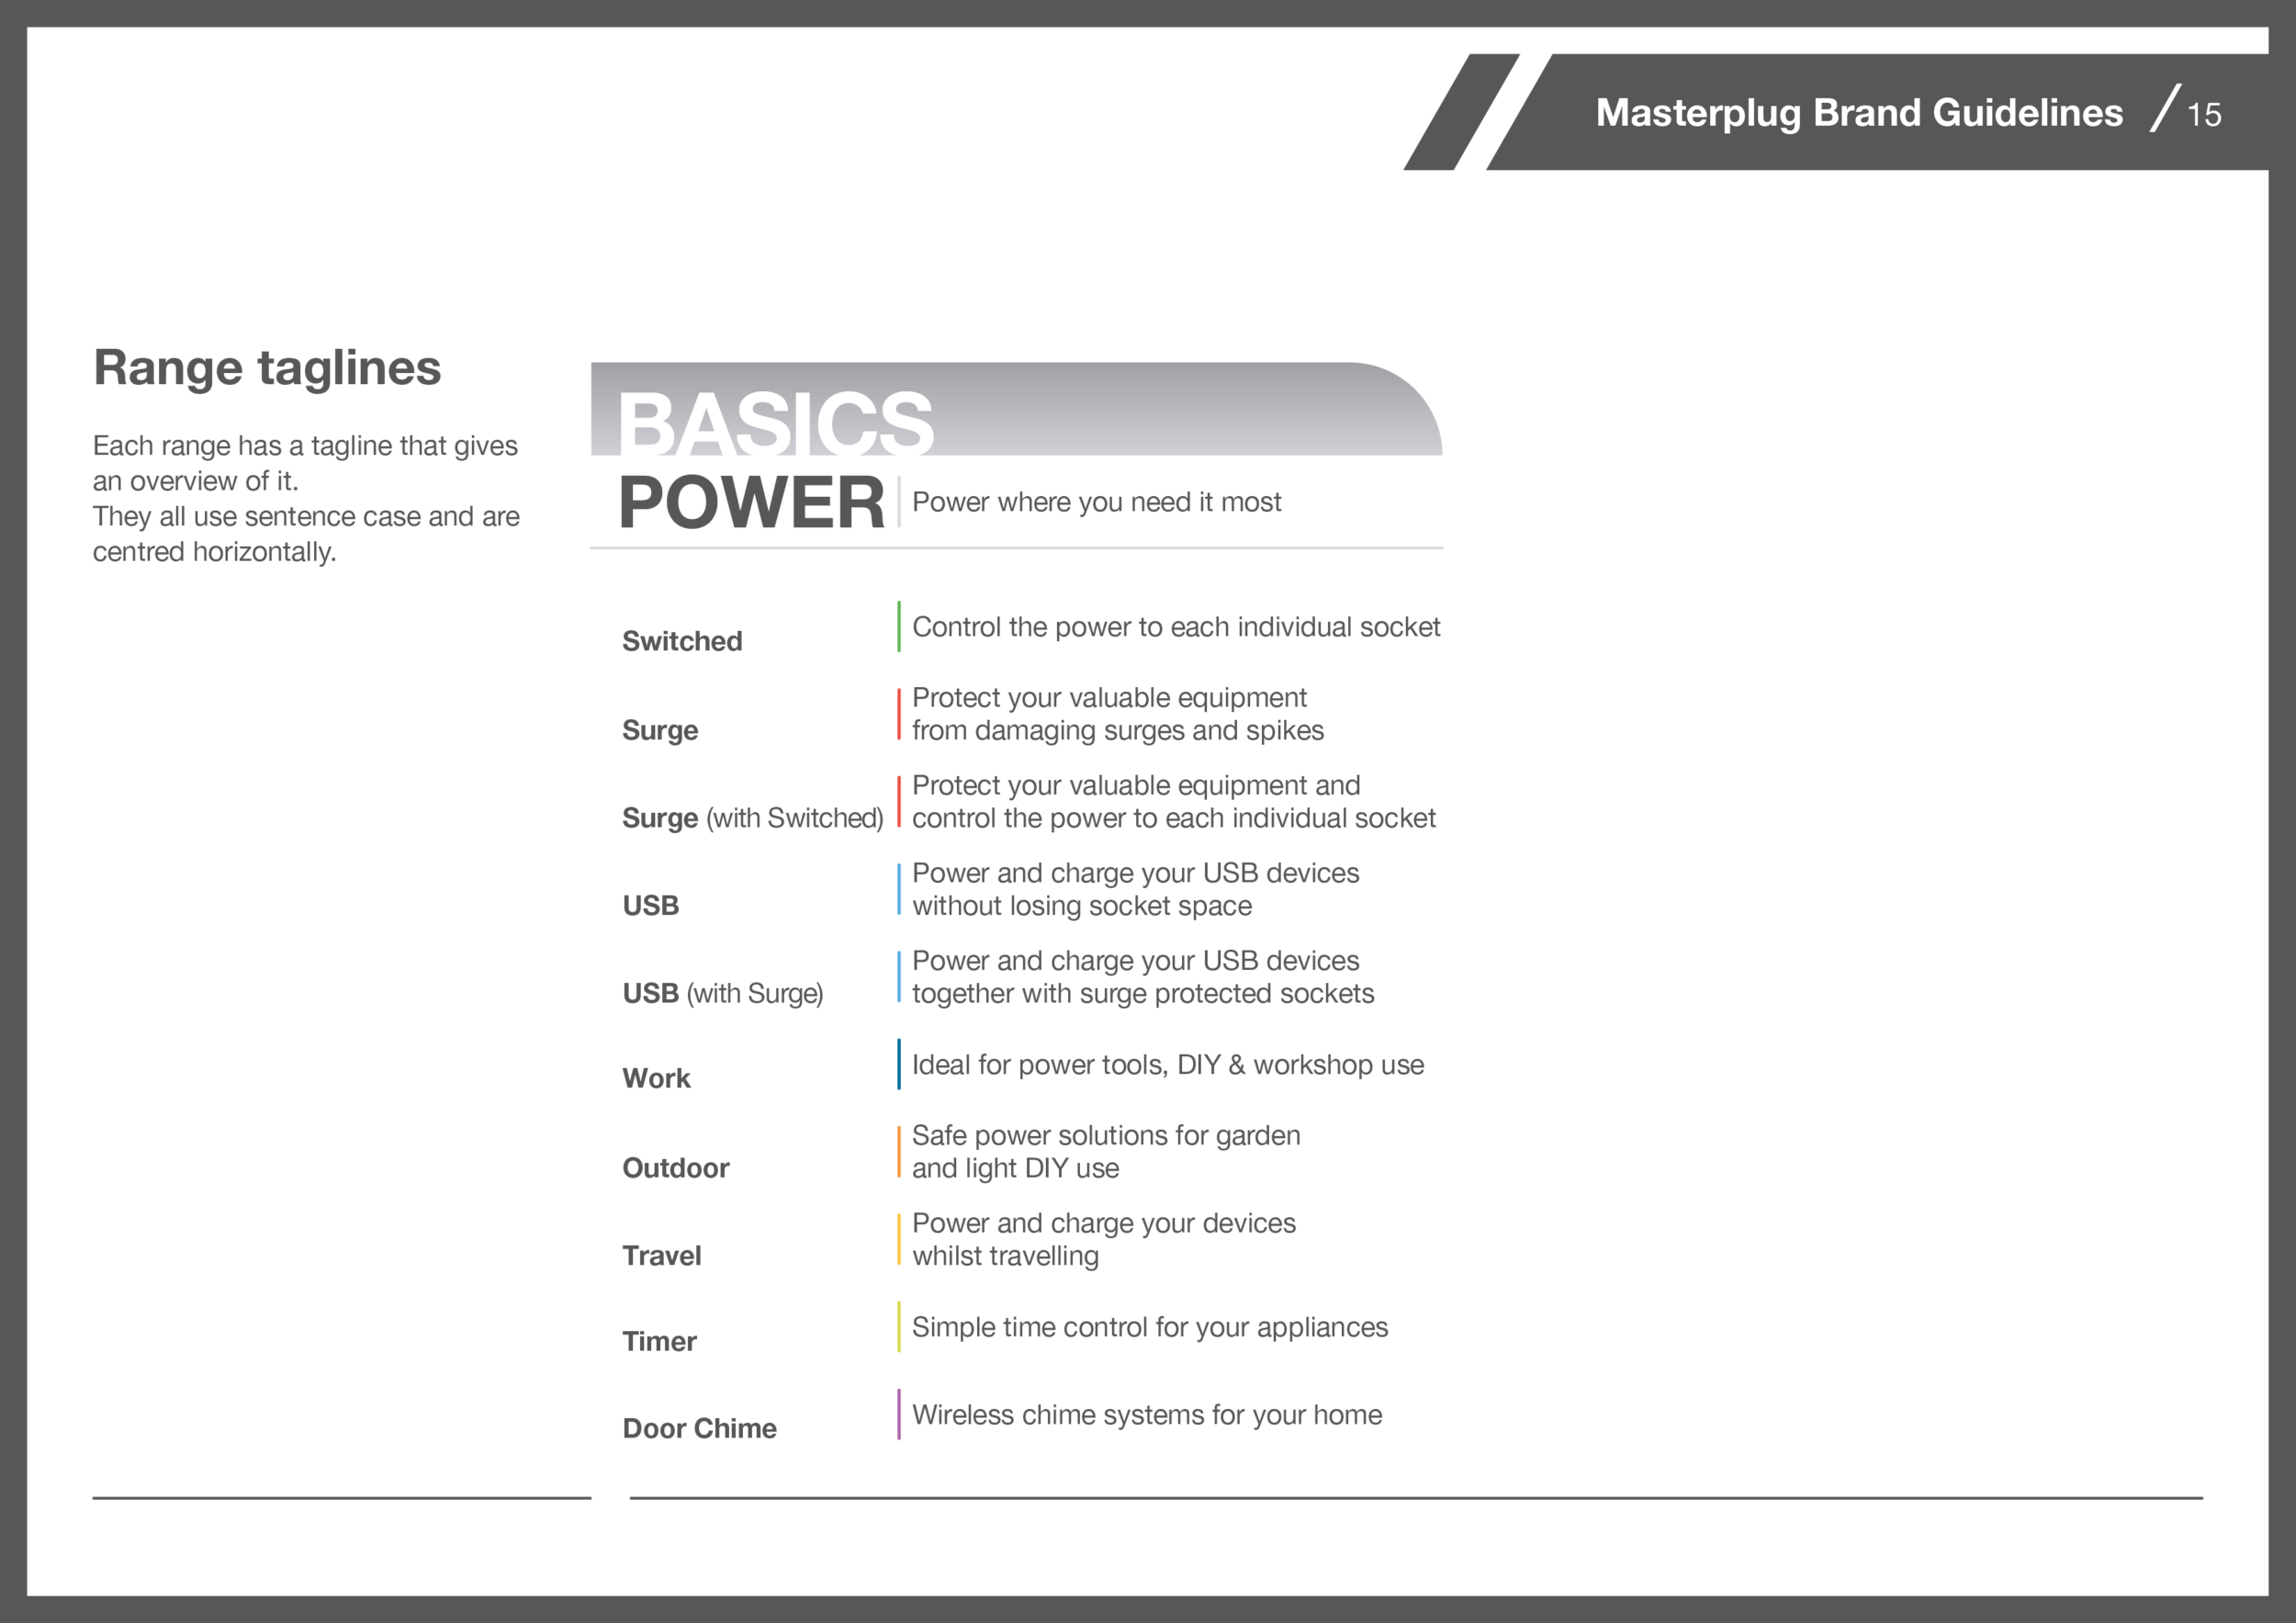 MP Brand Guidelines DS.06.1815.png